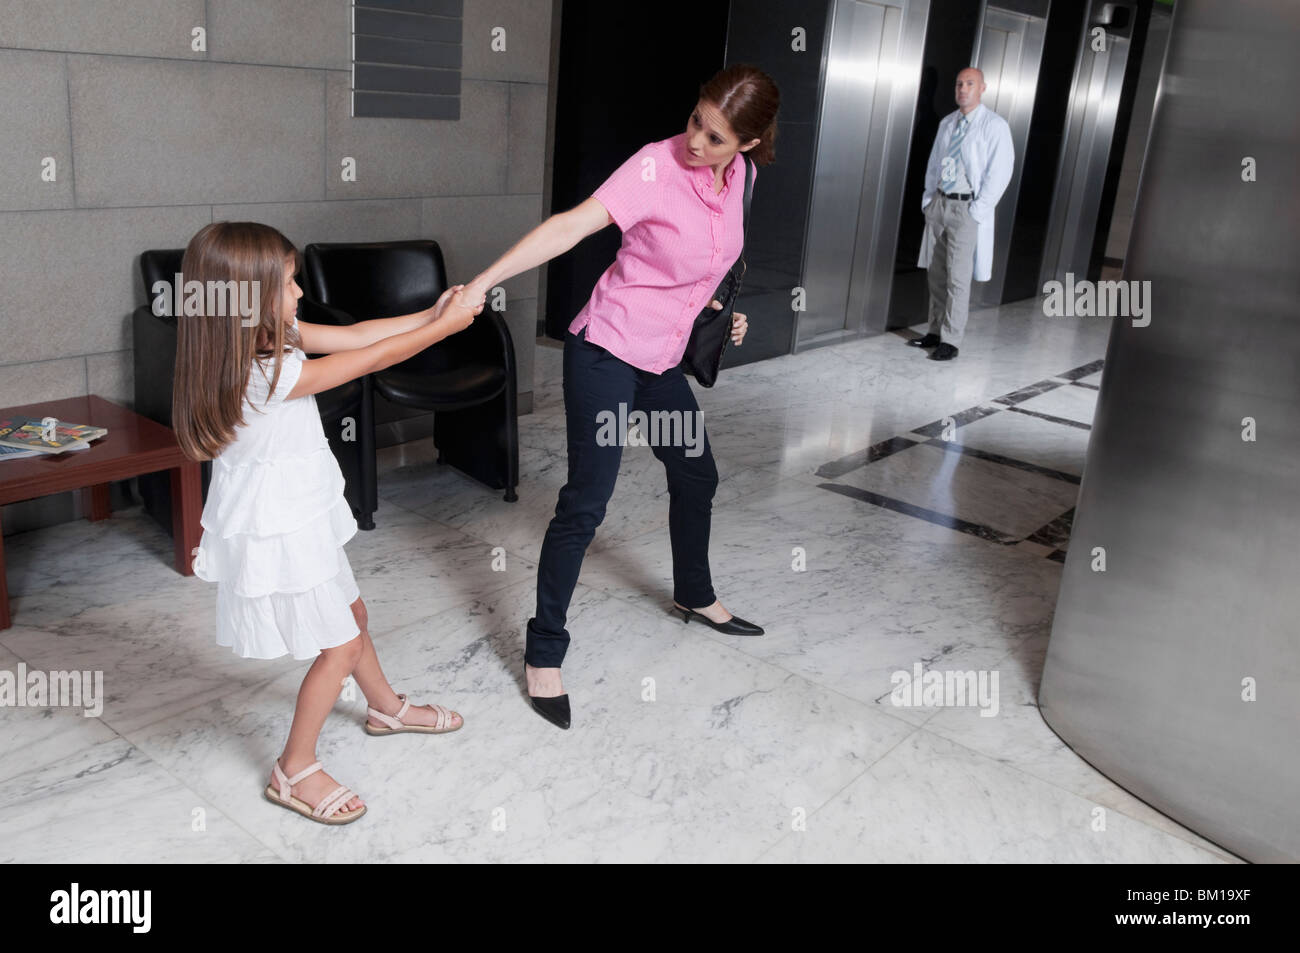 Girl tugging her mother in a hospital - Stock Image